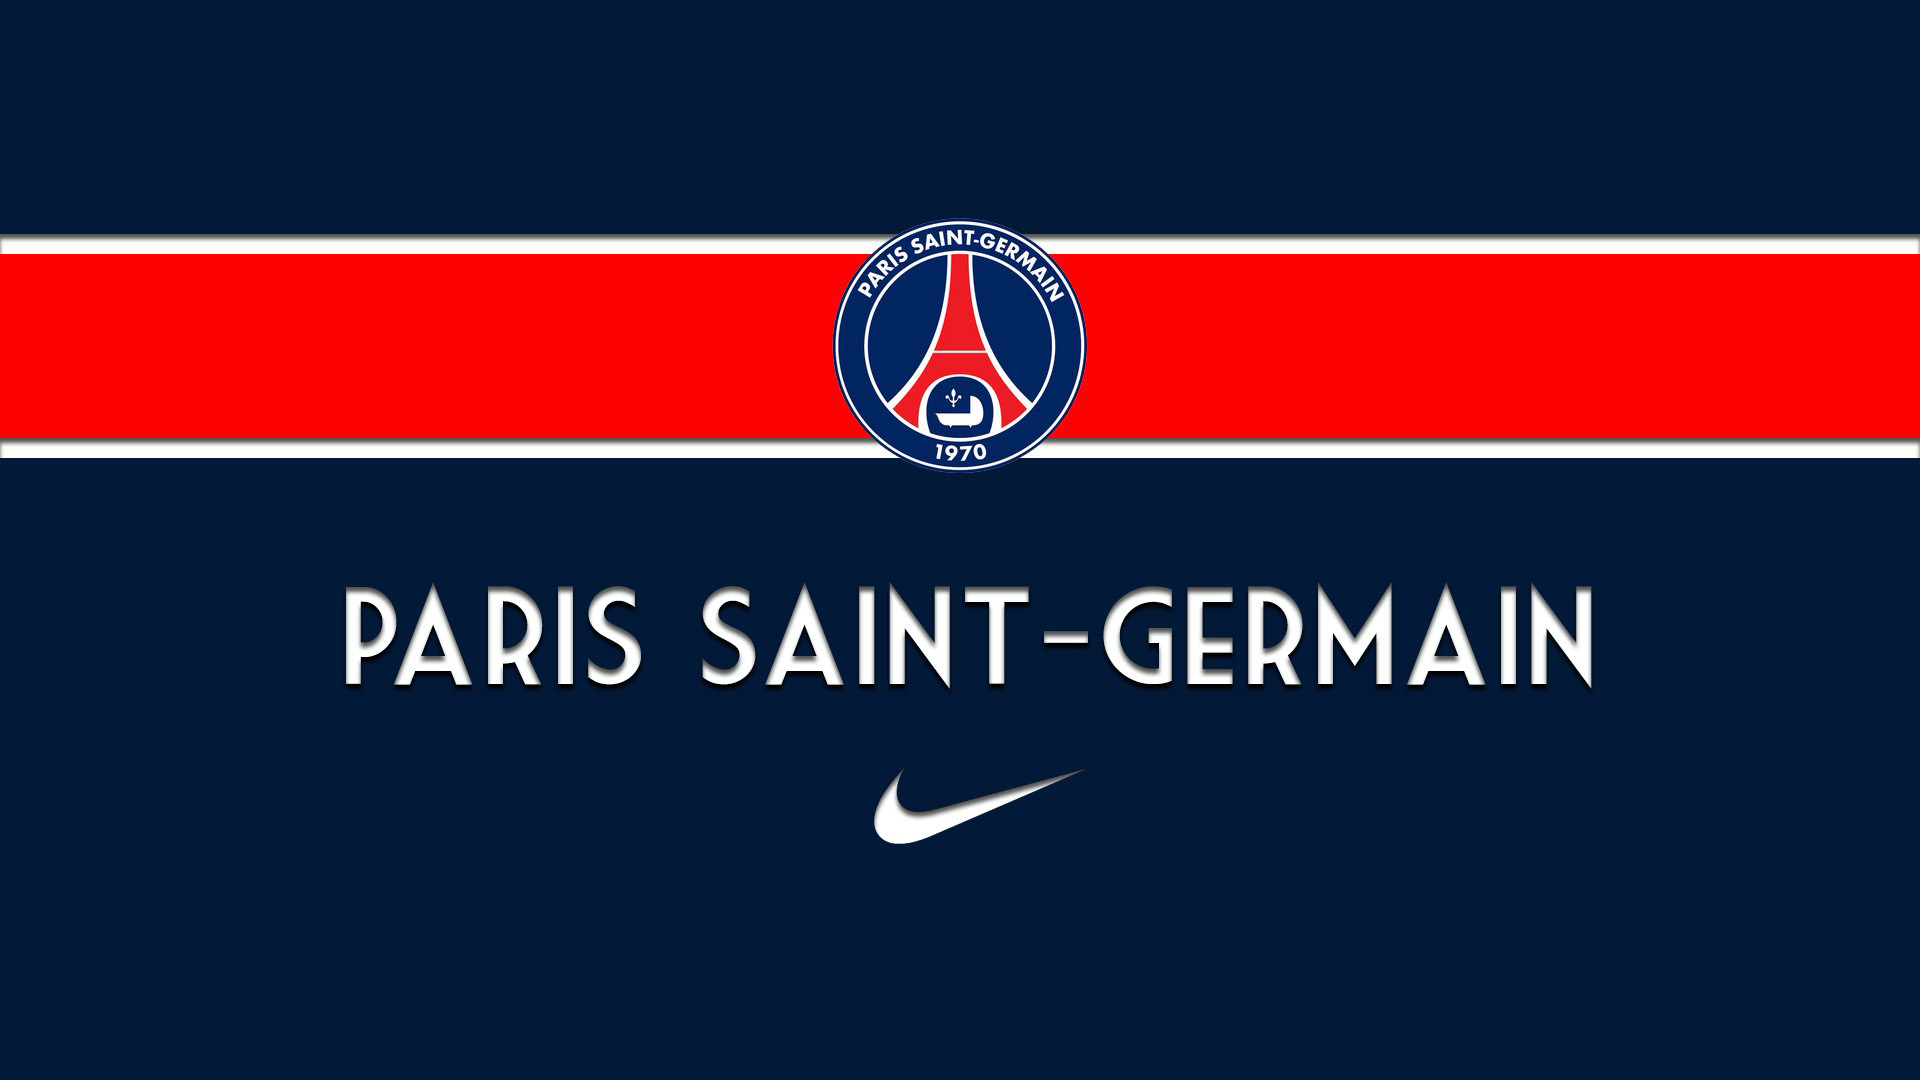 1920x1080 - Paris Saint-Germain F.C. Wallpapers 4